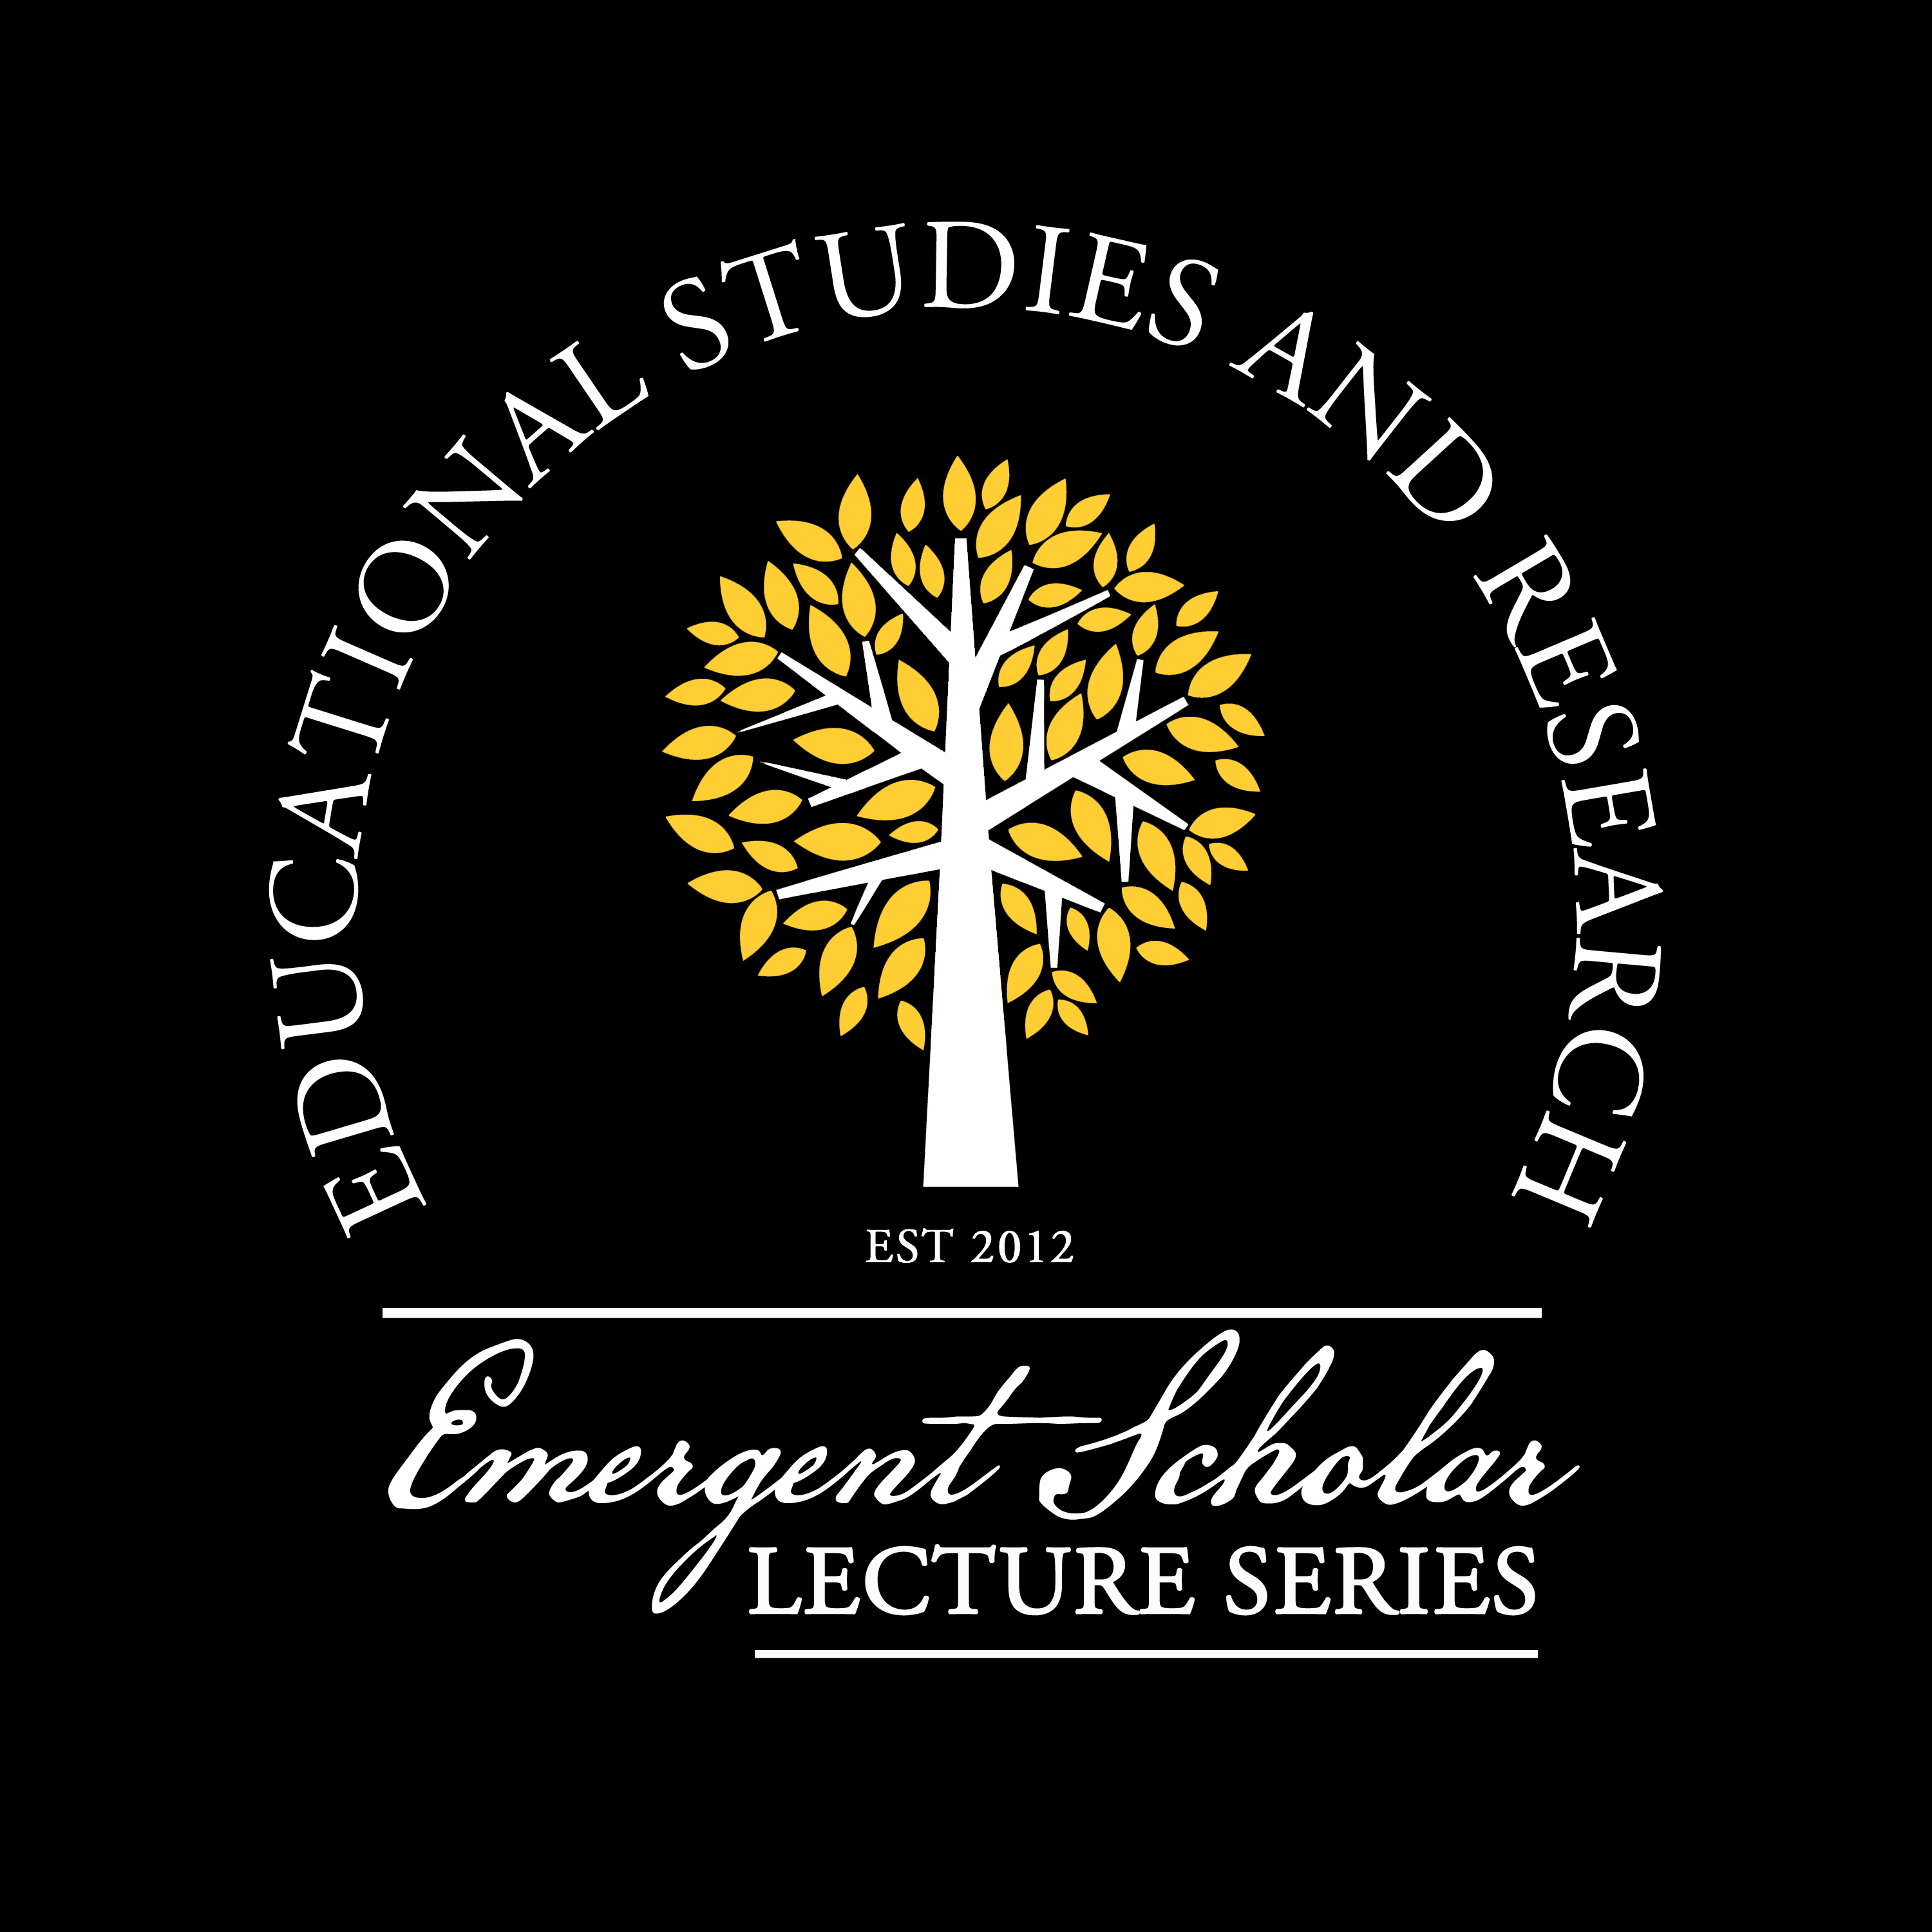 Emergent Scholar Lecture Series